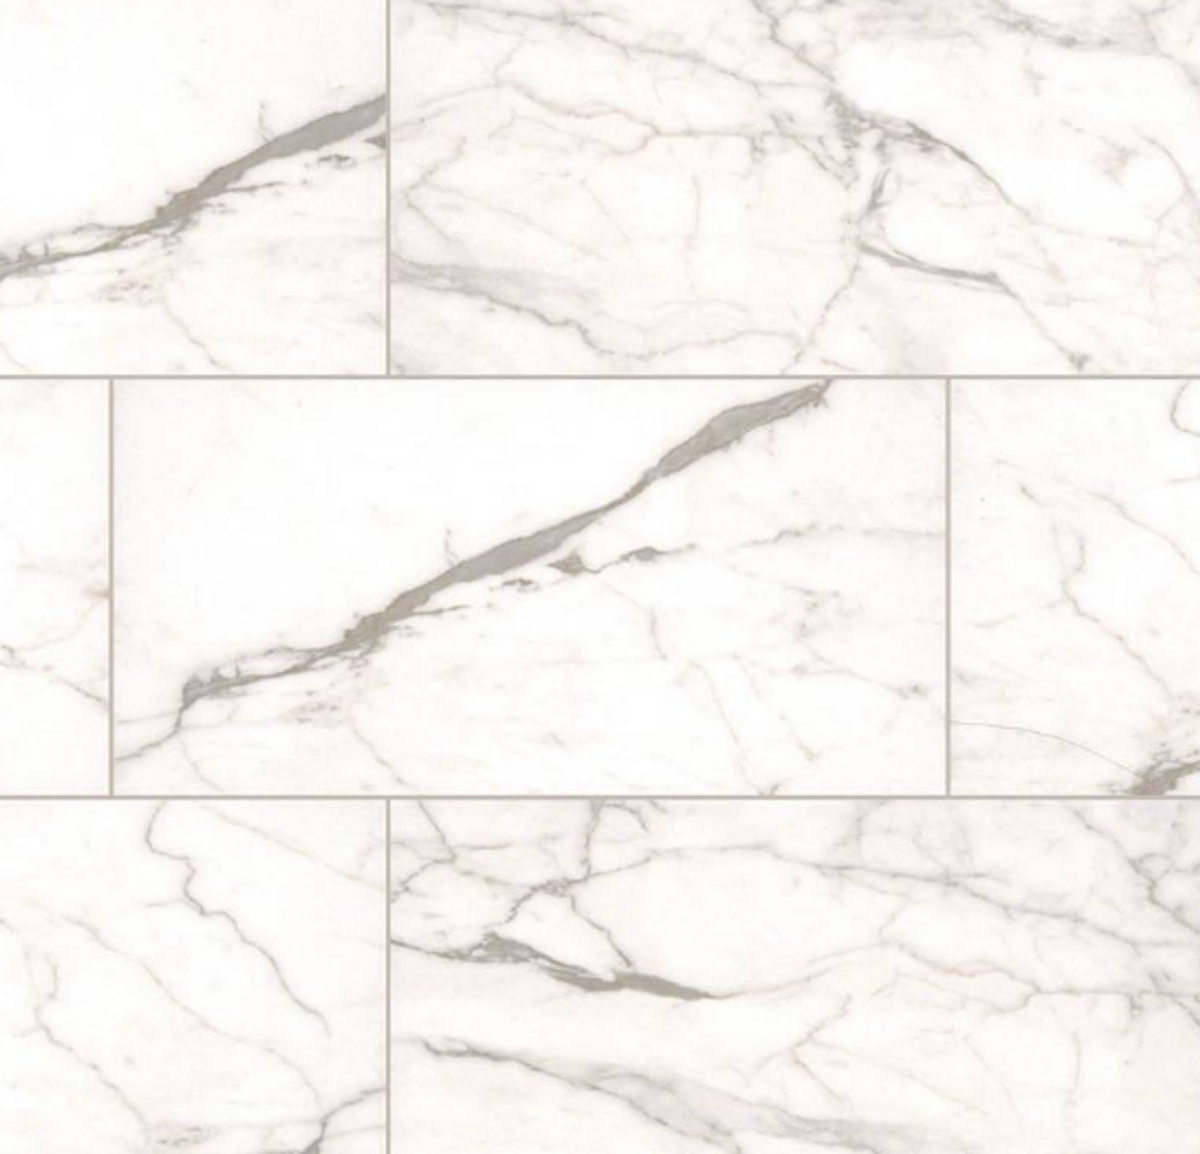 Calacatta Borghini Porcelain Tile Collection